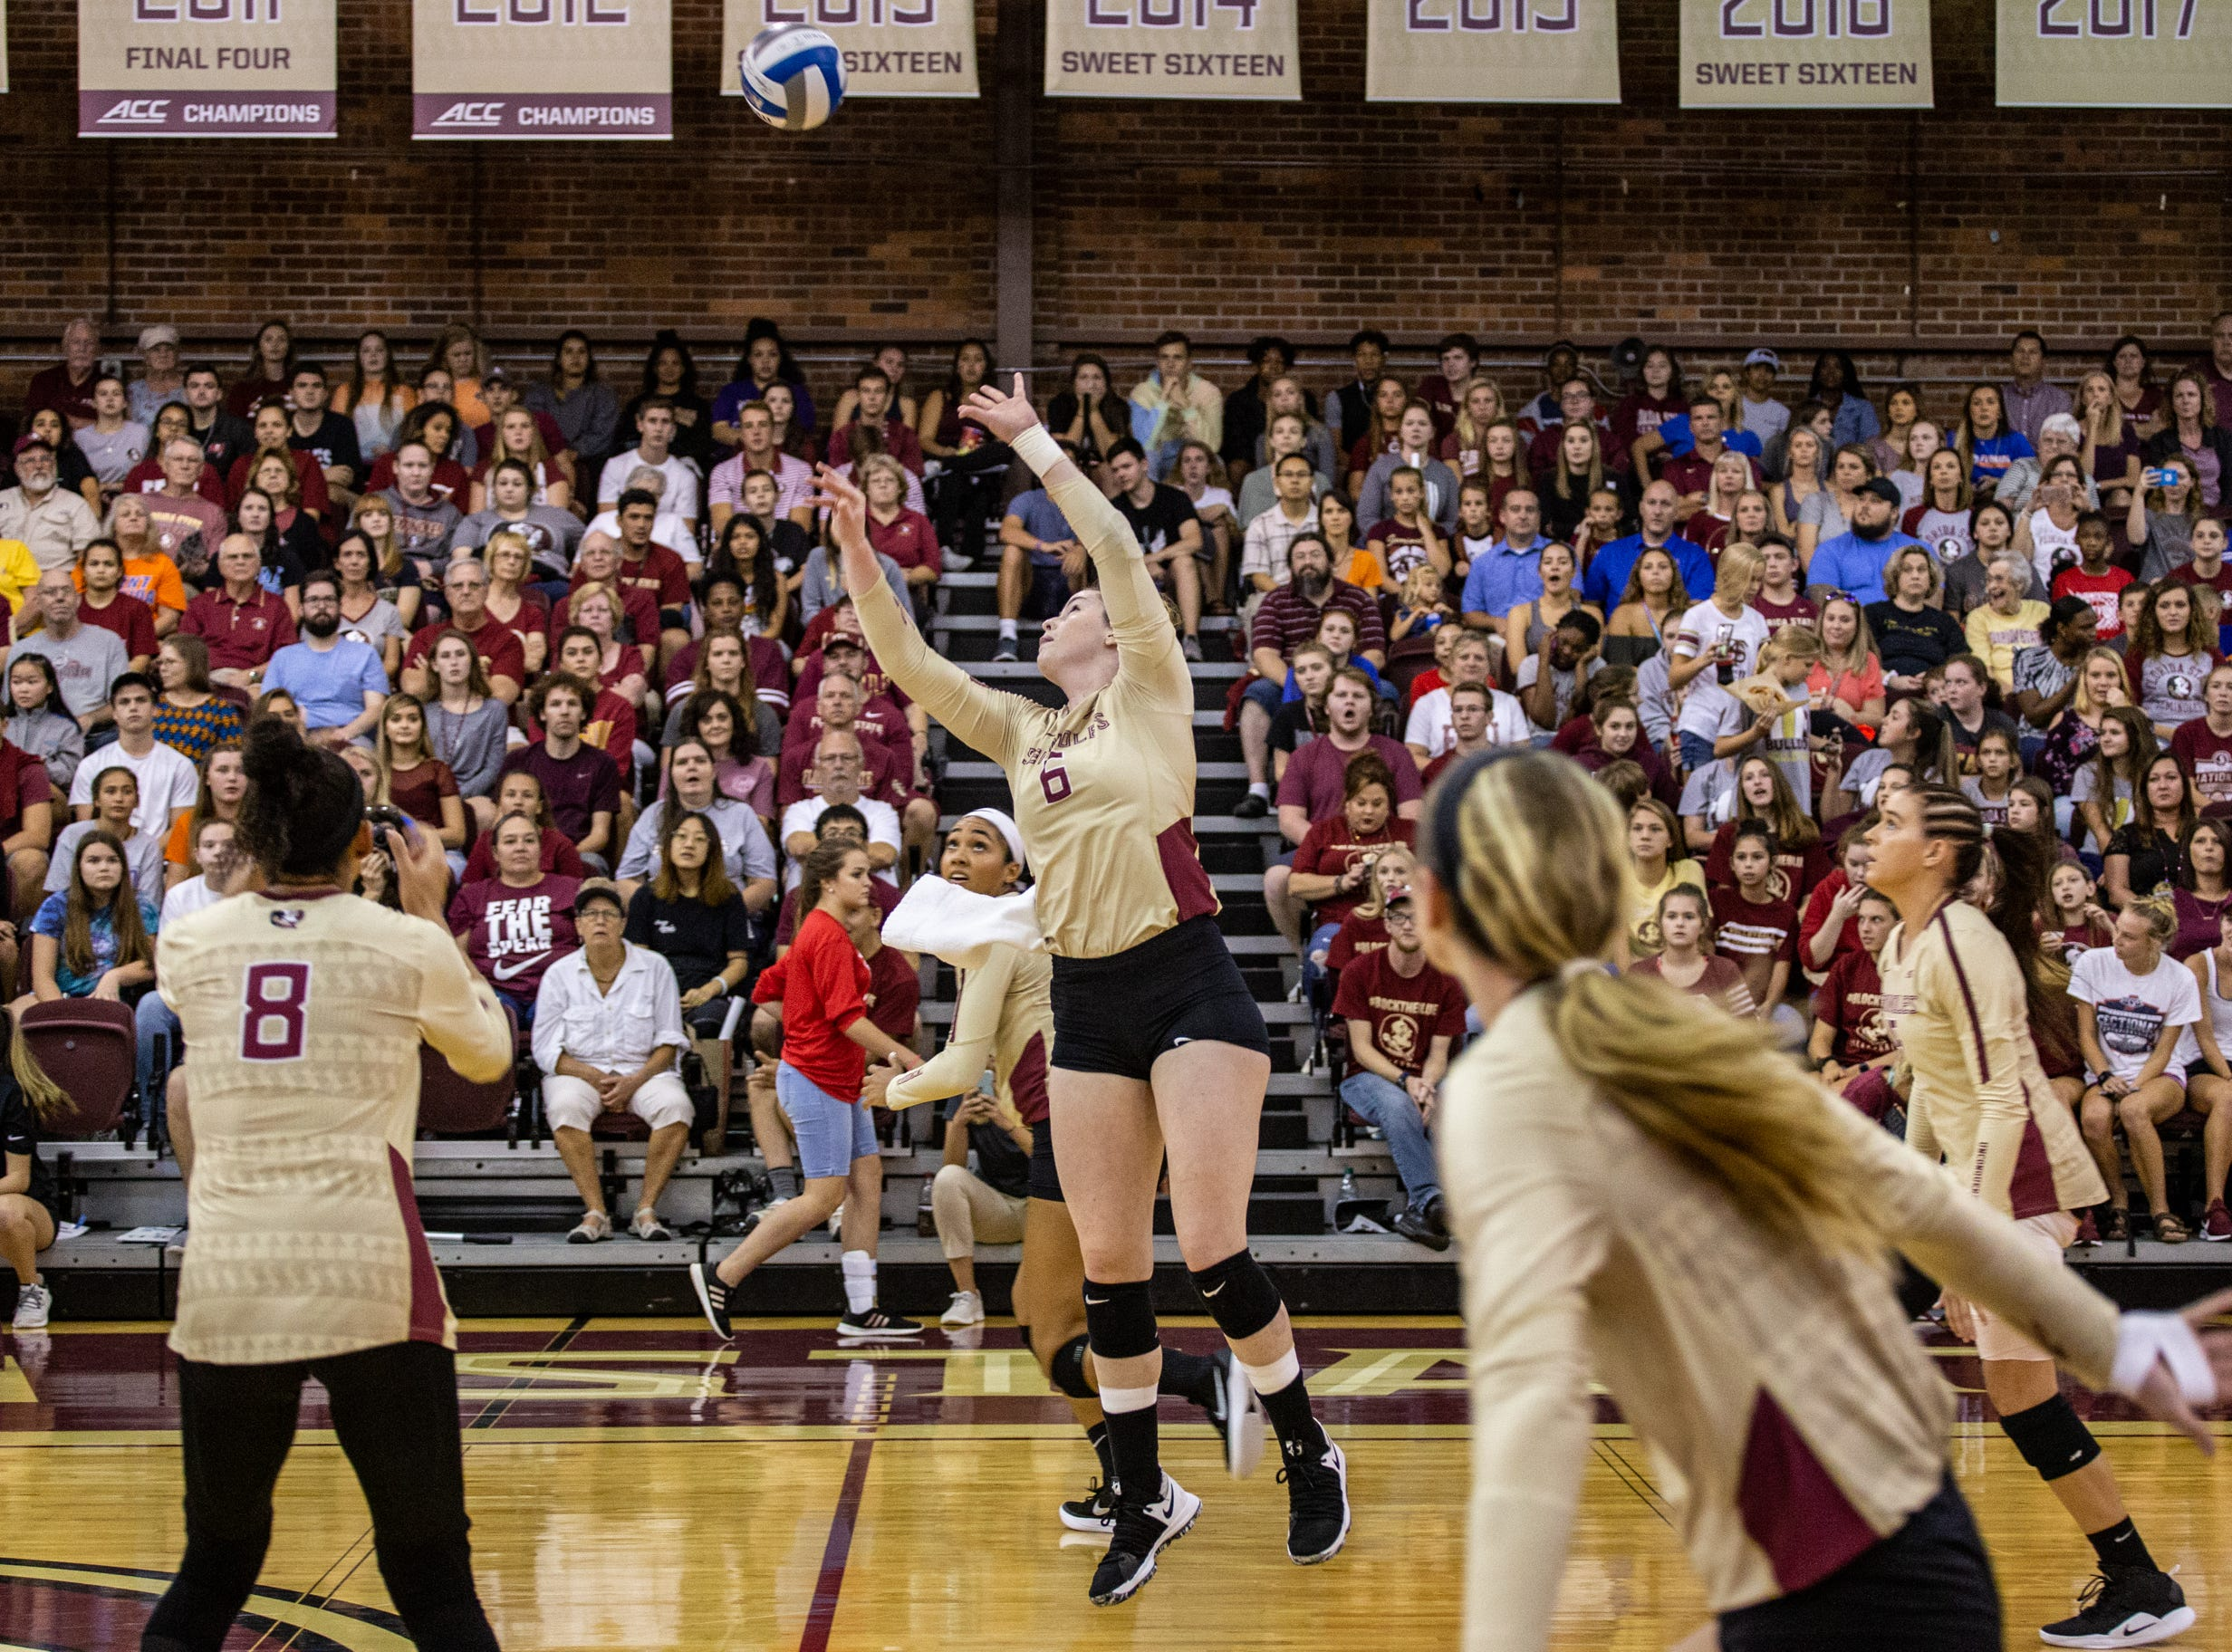 FSU Volleyball team captain Brianne Burkert (6) sets the ball over the net during the first set against Florida at Tully Gymnasium on Wednesday.